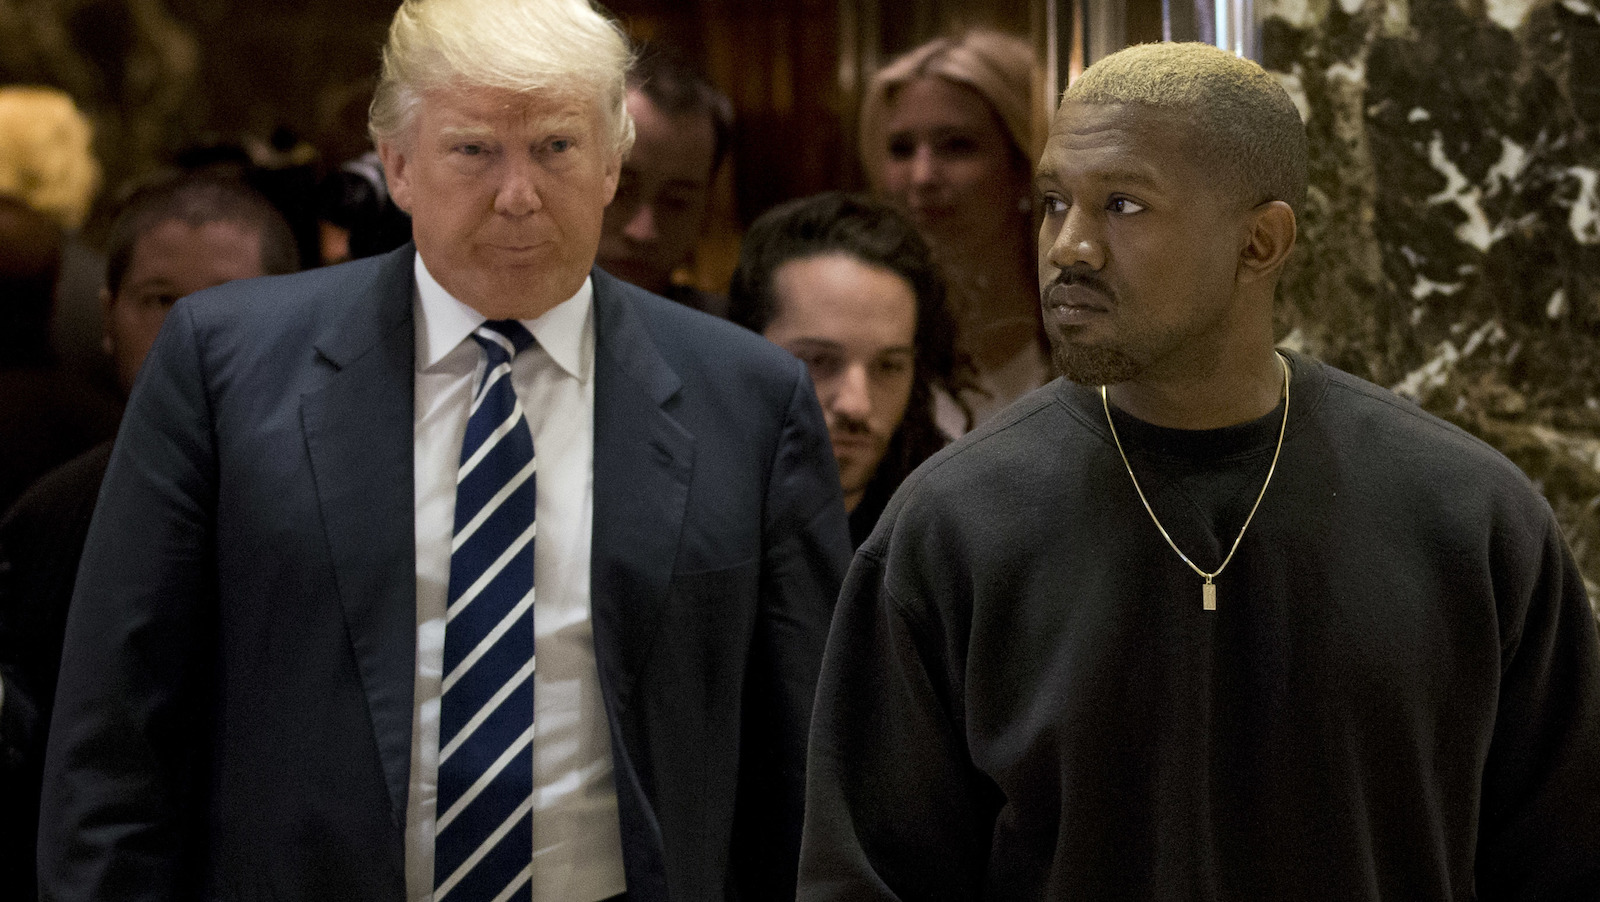 Kanye West and President-elect Donald Trump arrive to the lobby of Trump Tower in New York, Tuesday, Dec. 13, 2016. (AP Photo/Seth Wenig)